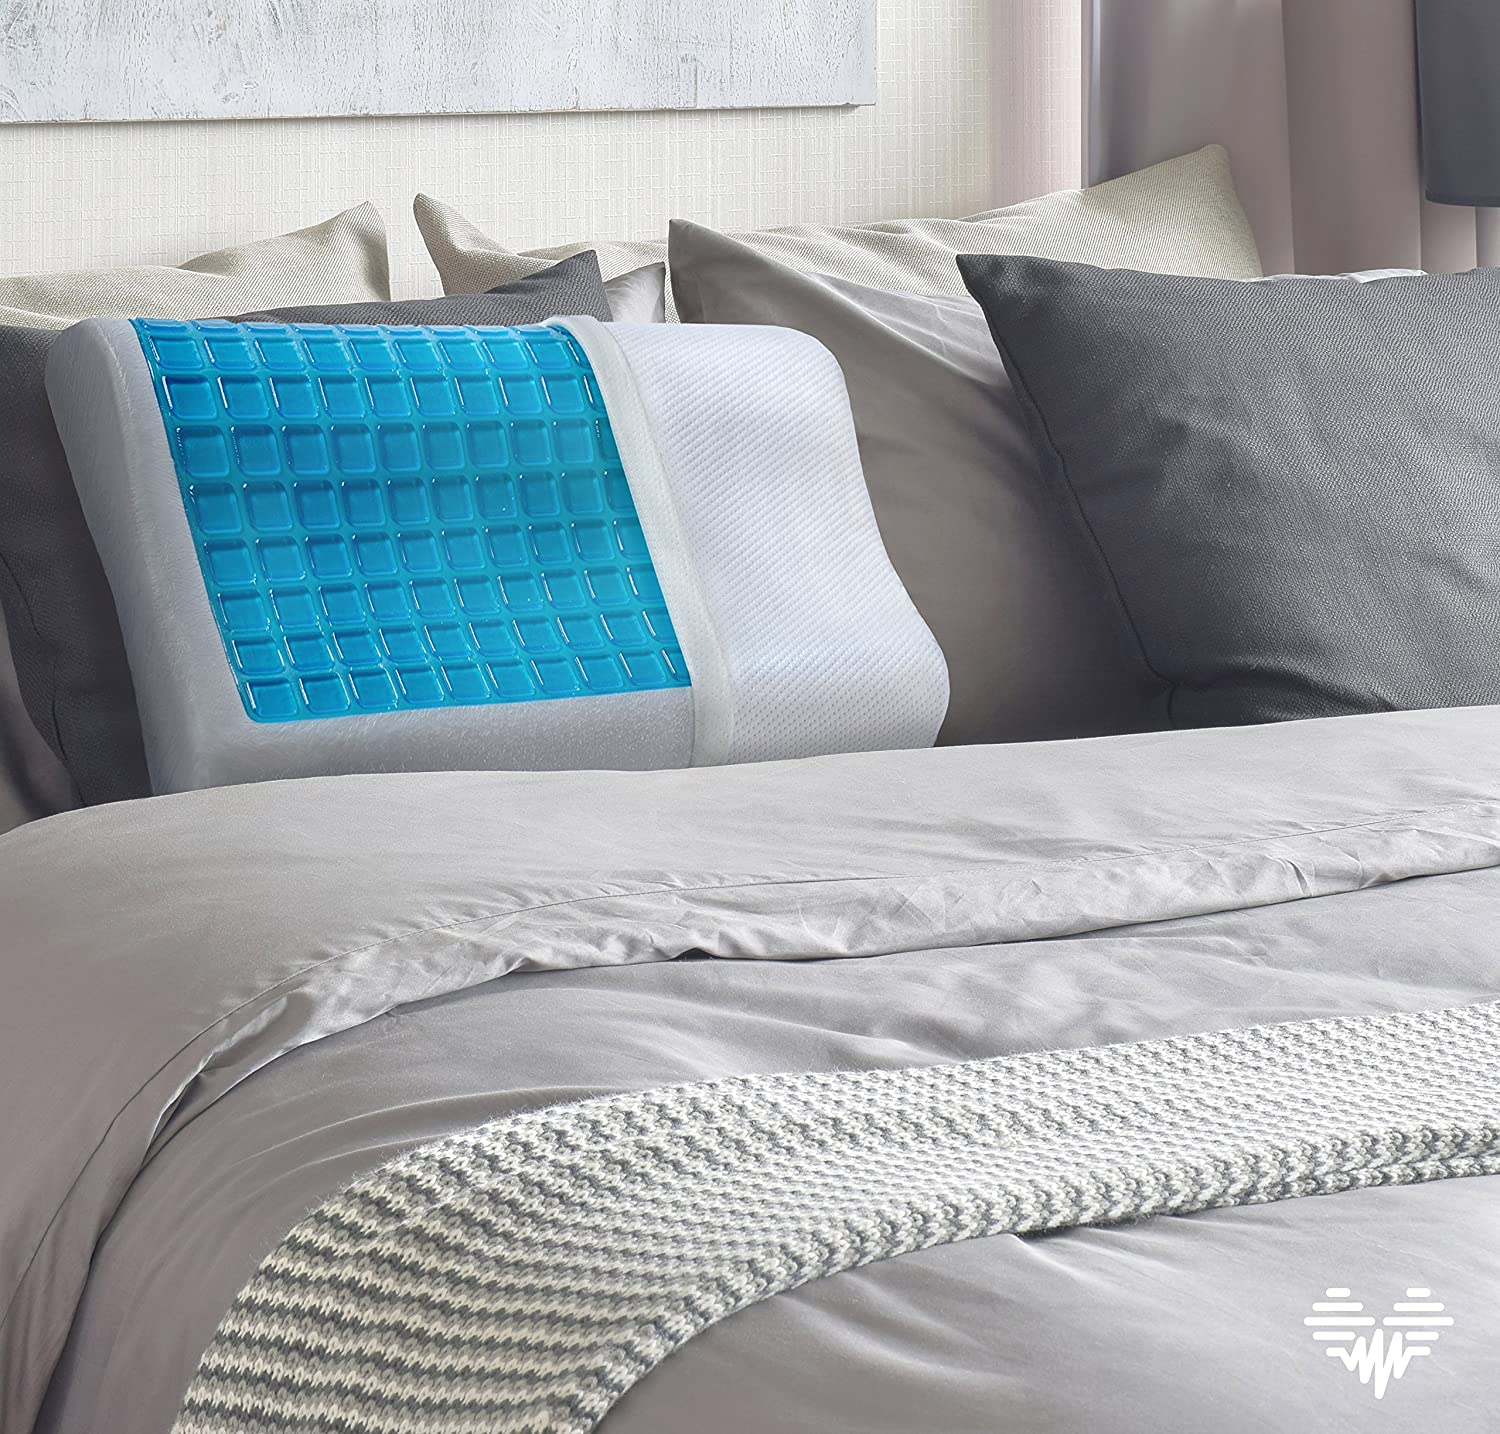 Top 5 Best Cooling Pillows And Buying Tips You Need To